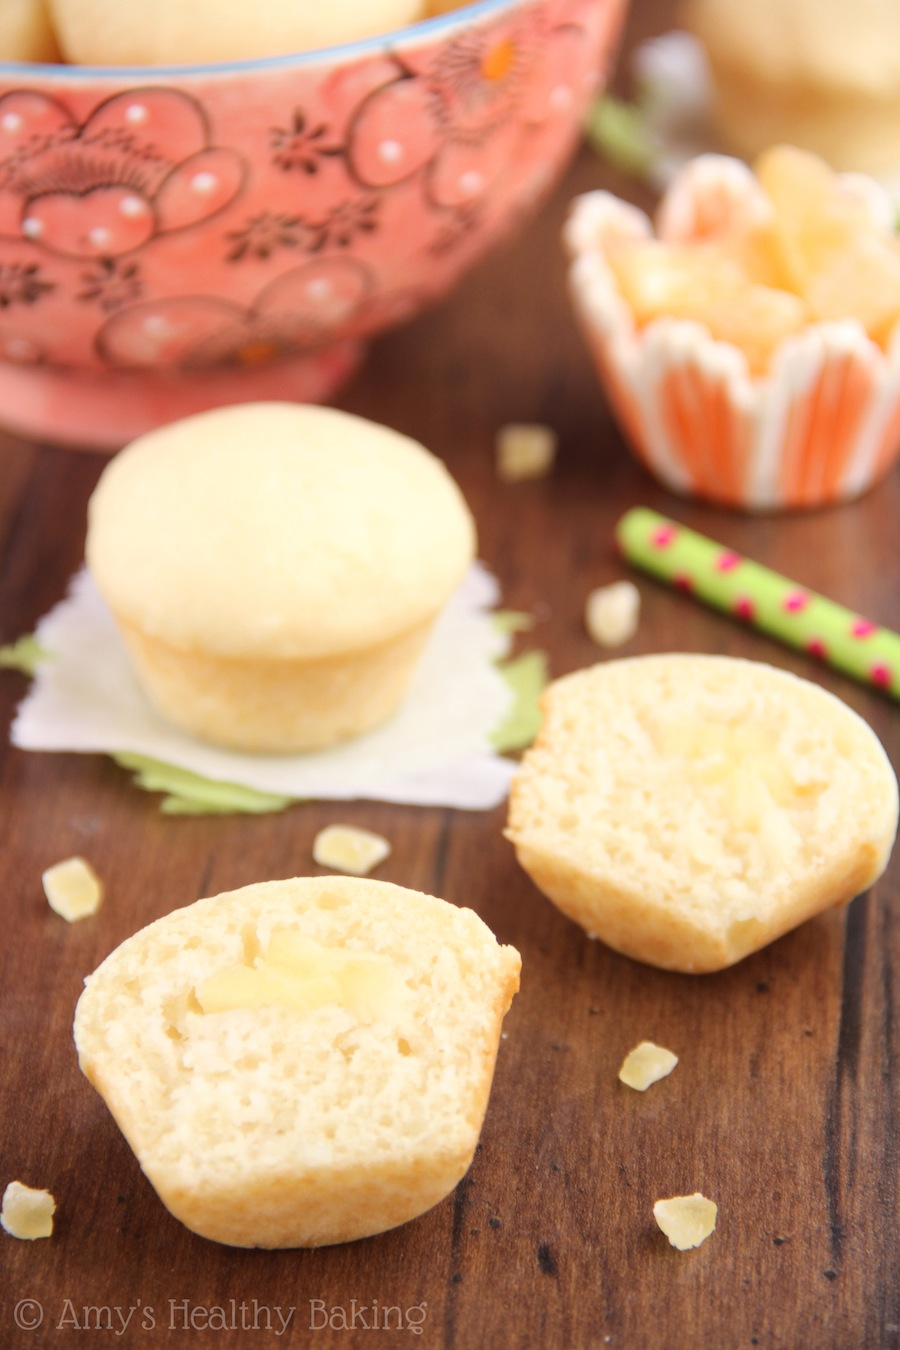 Coconut muffins with a juicy pineapple center -- like a piña colada, sans rum! Secretly skinny to get you bikini ready in no time!